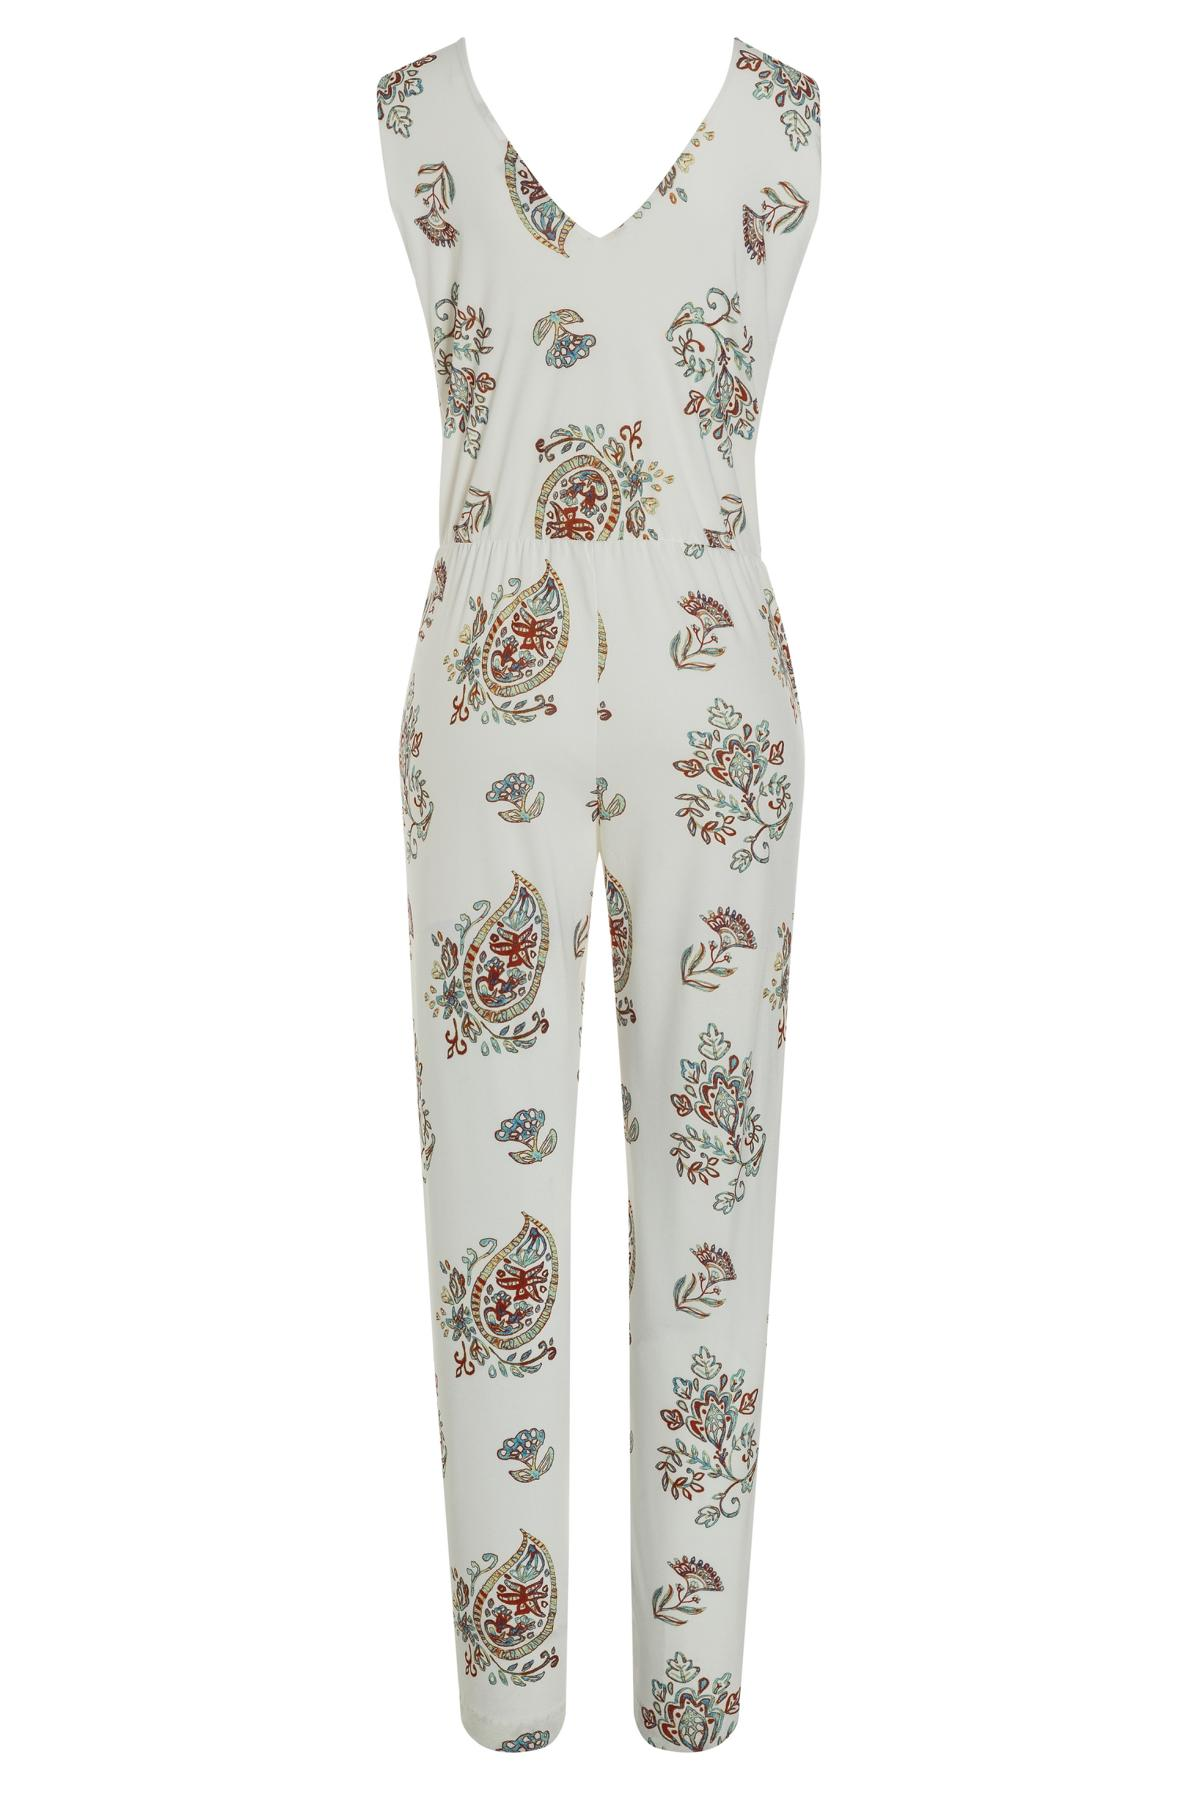 PRODUCT_PICTURE_PRE_7Ana Alcazar Ethno Jumpsuit Tespla PRODUCT_PICTURE_SUF_7